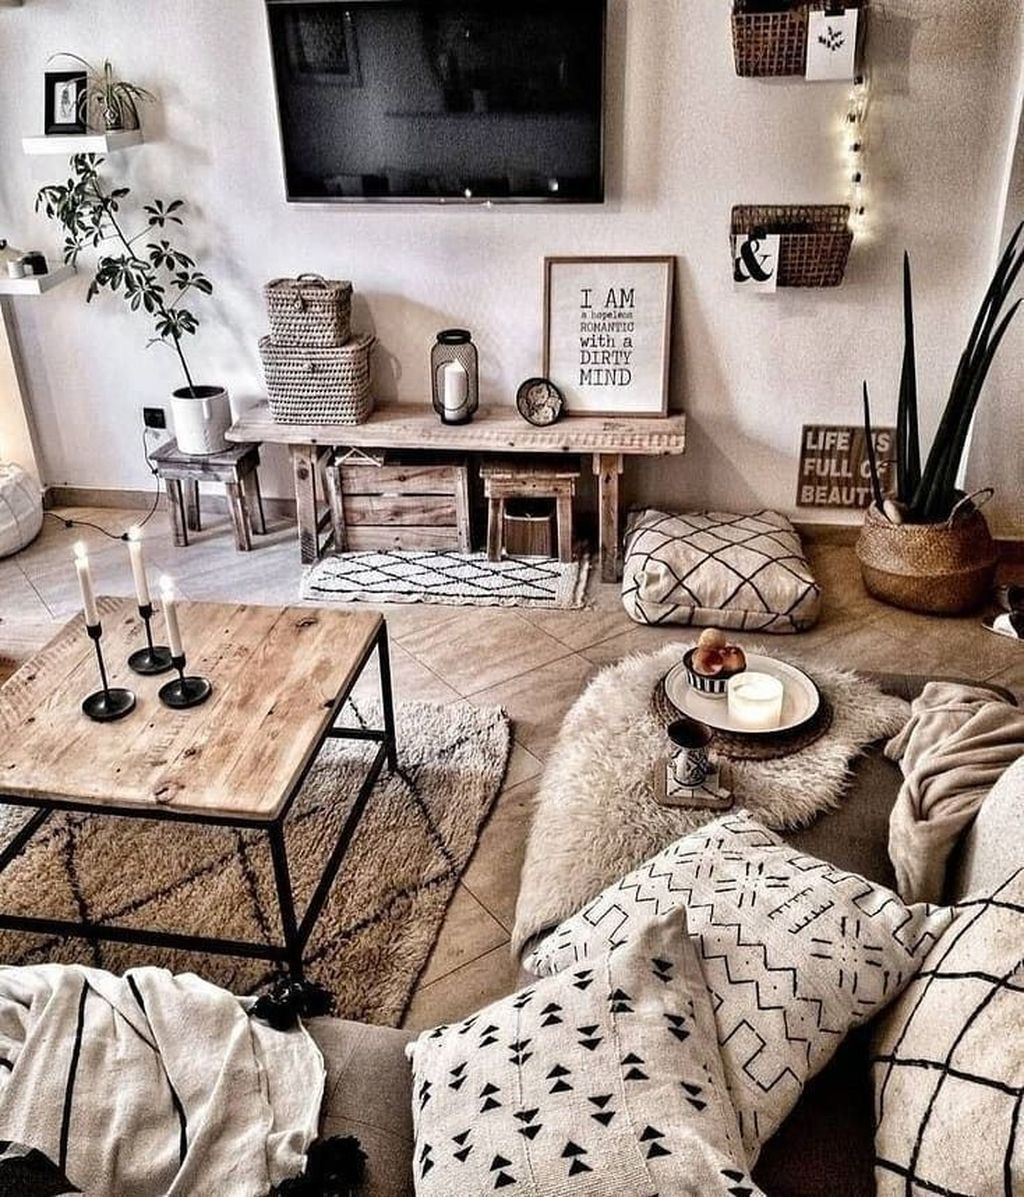 Adorable 20 Comfy Living Room Decor Ideas To Make Anyone Feel Right At Home Kleines Wohnzimmer Dekor Wohnzimmer Dekor Kleine Wohnzimmer